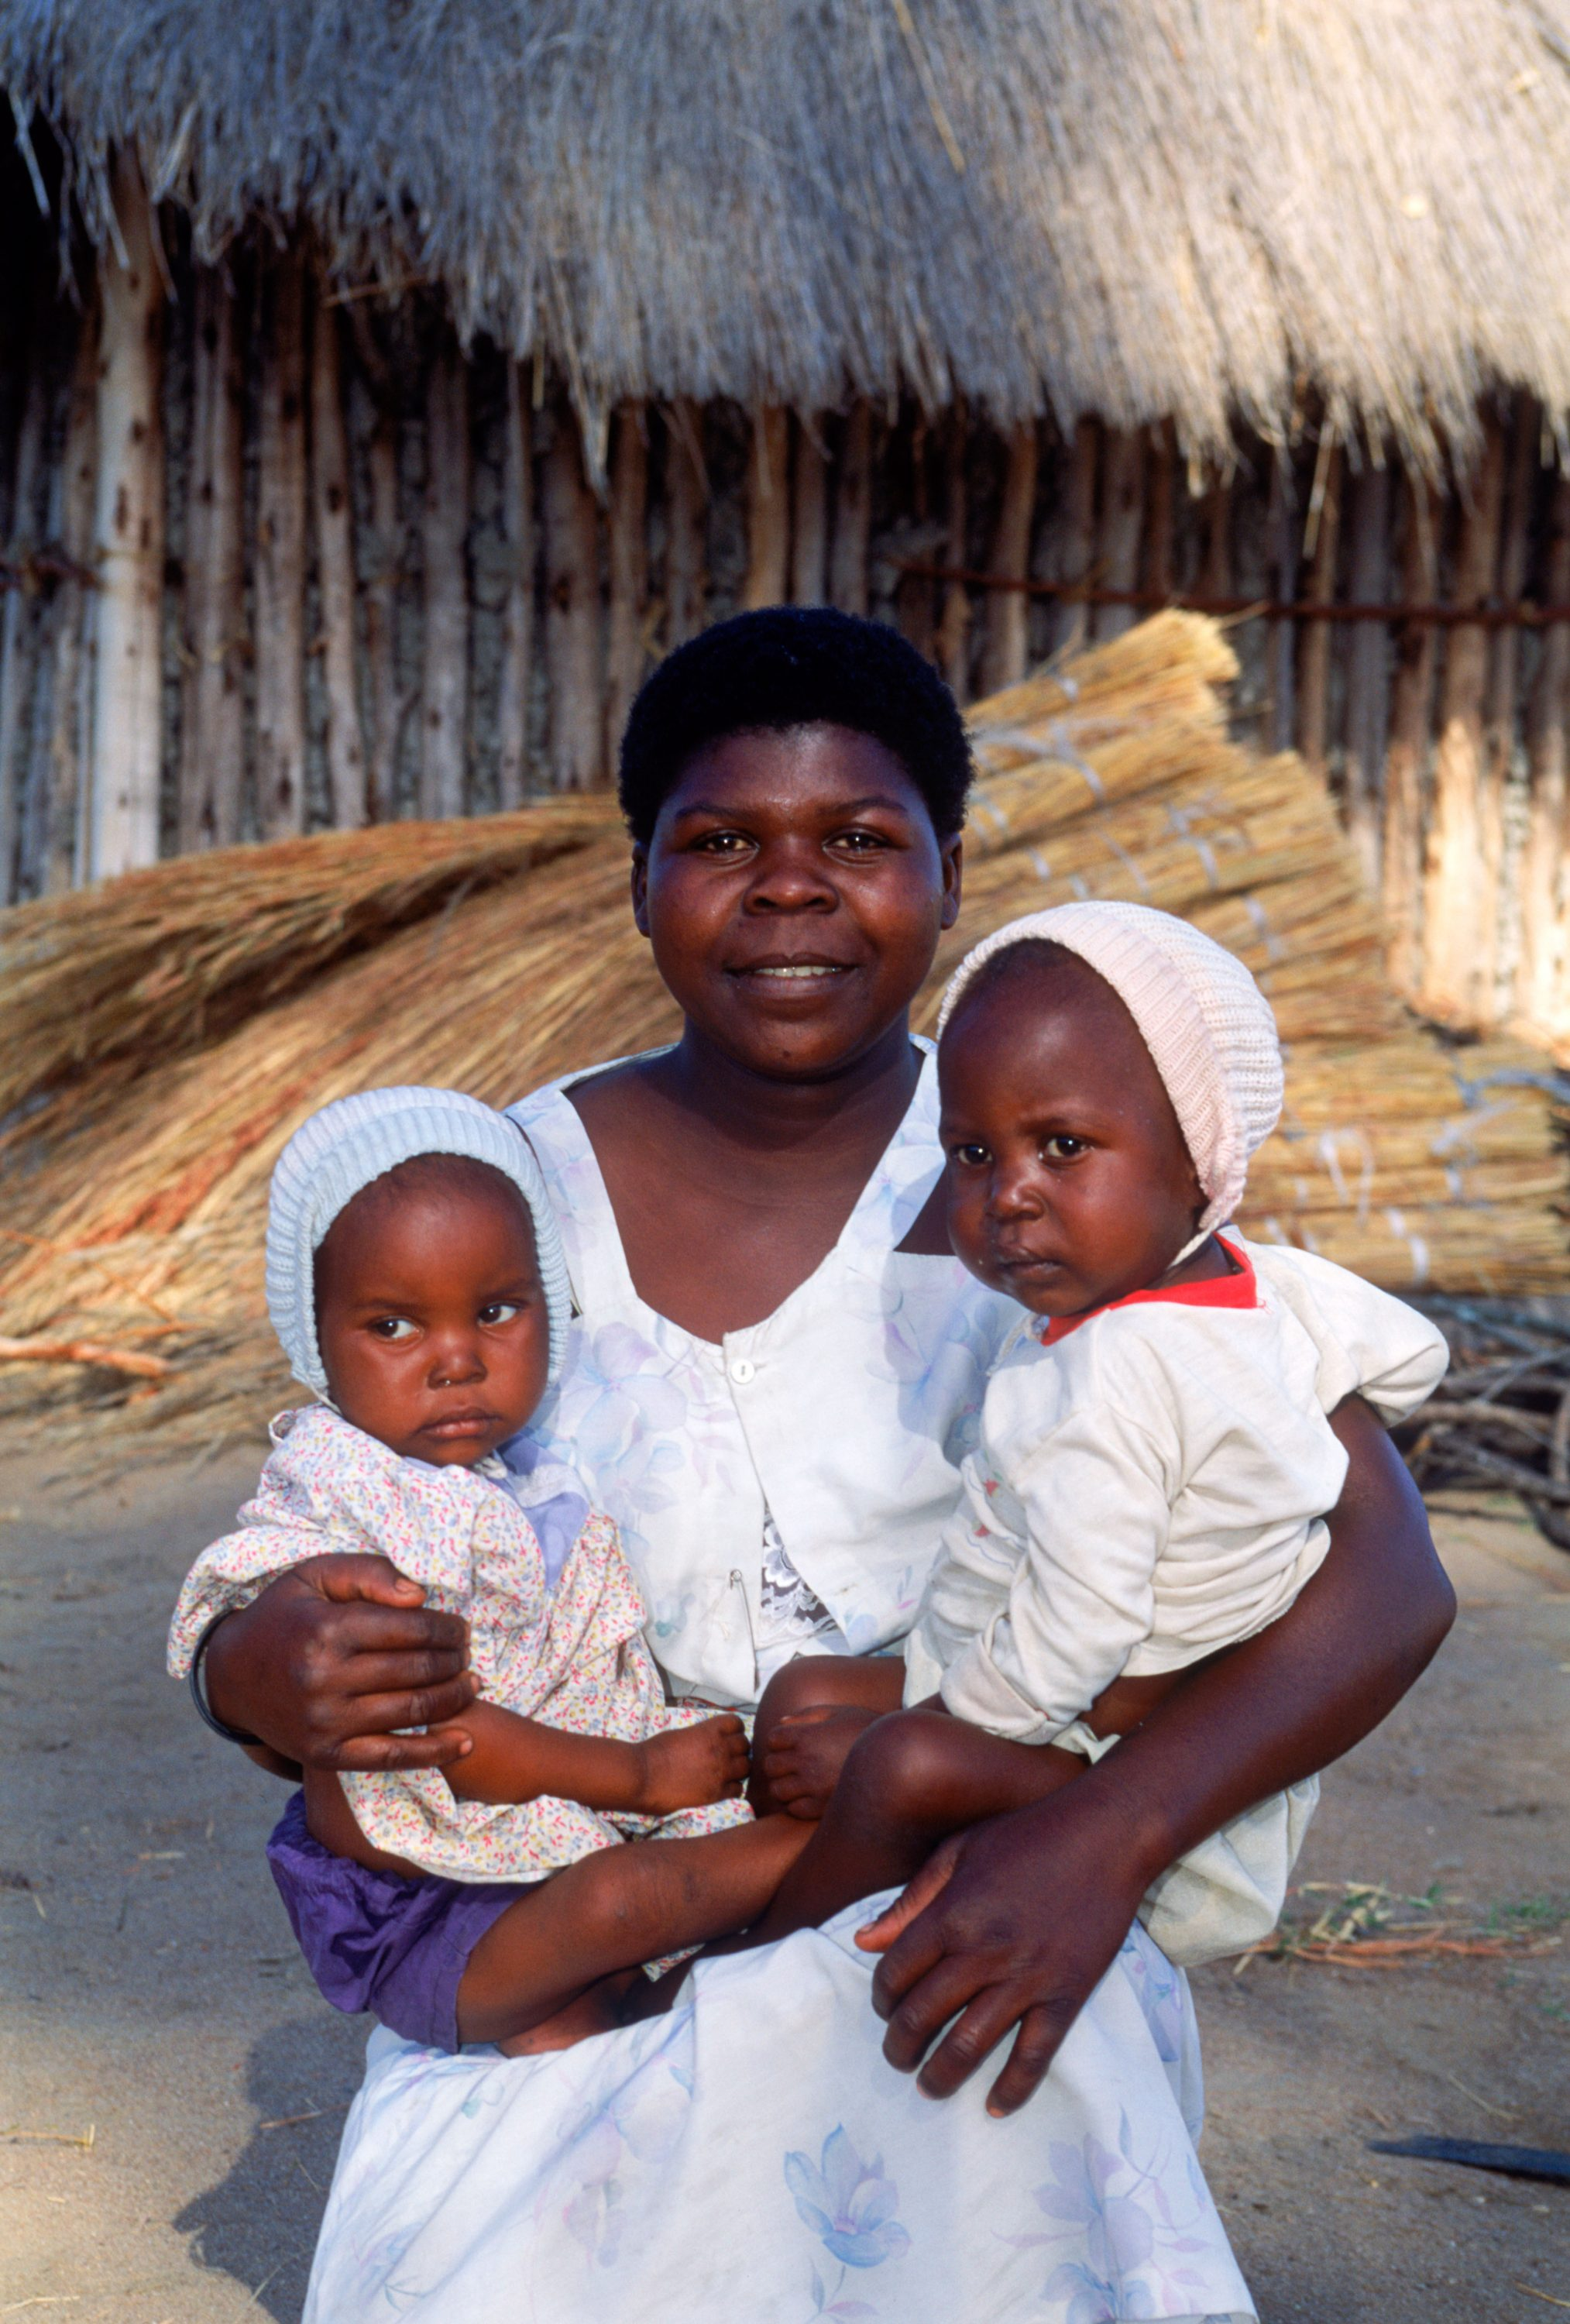 African woman holding two babies in her arms in front of village hut in rural Zimbabwe